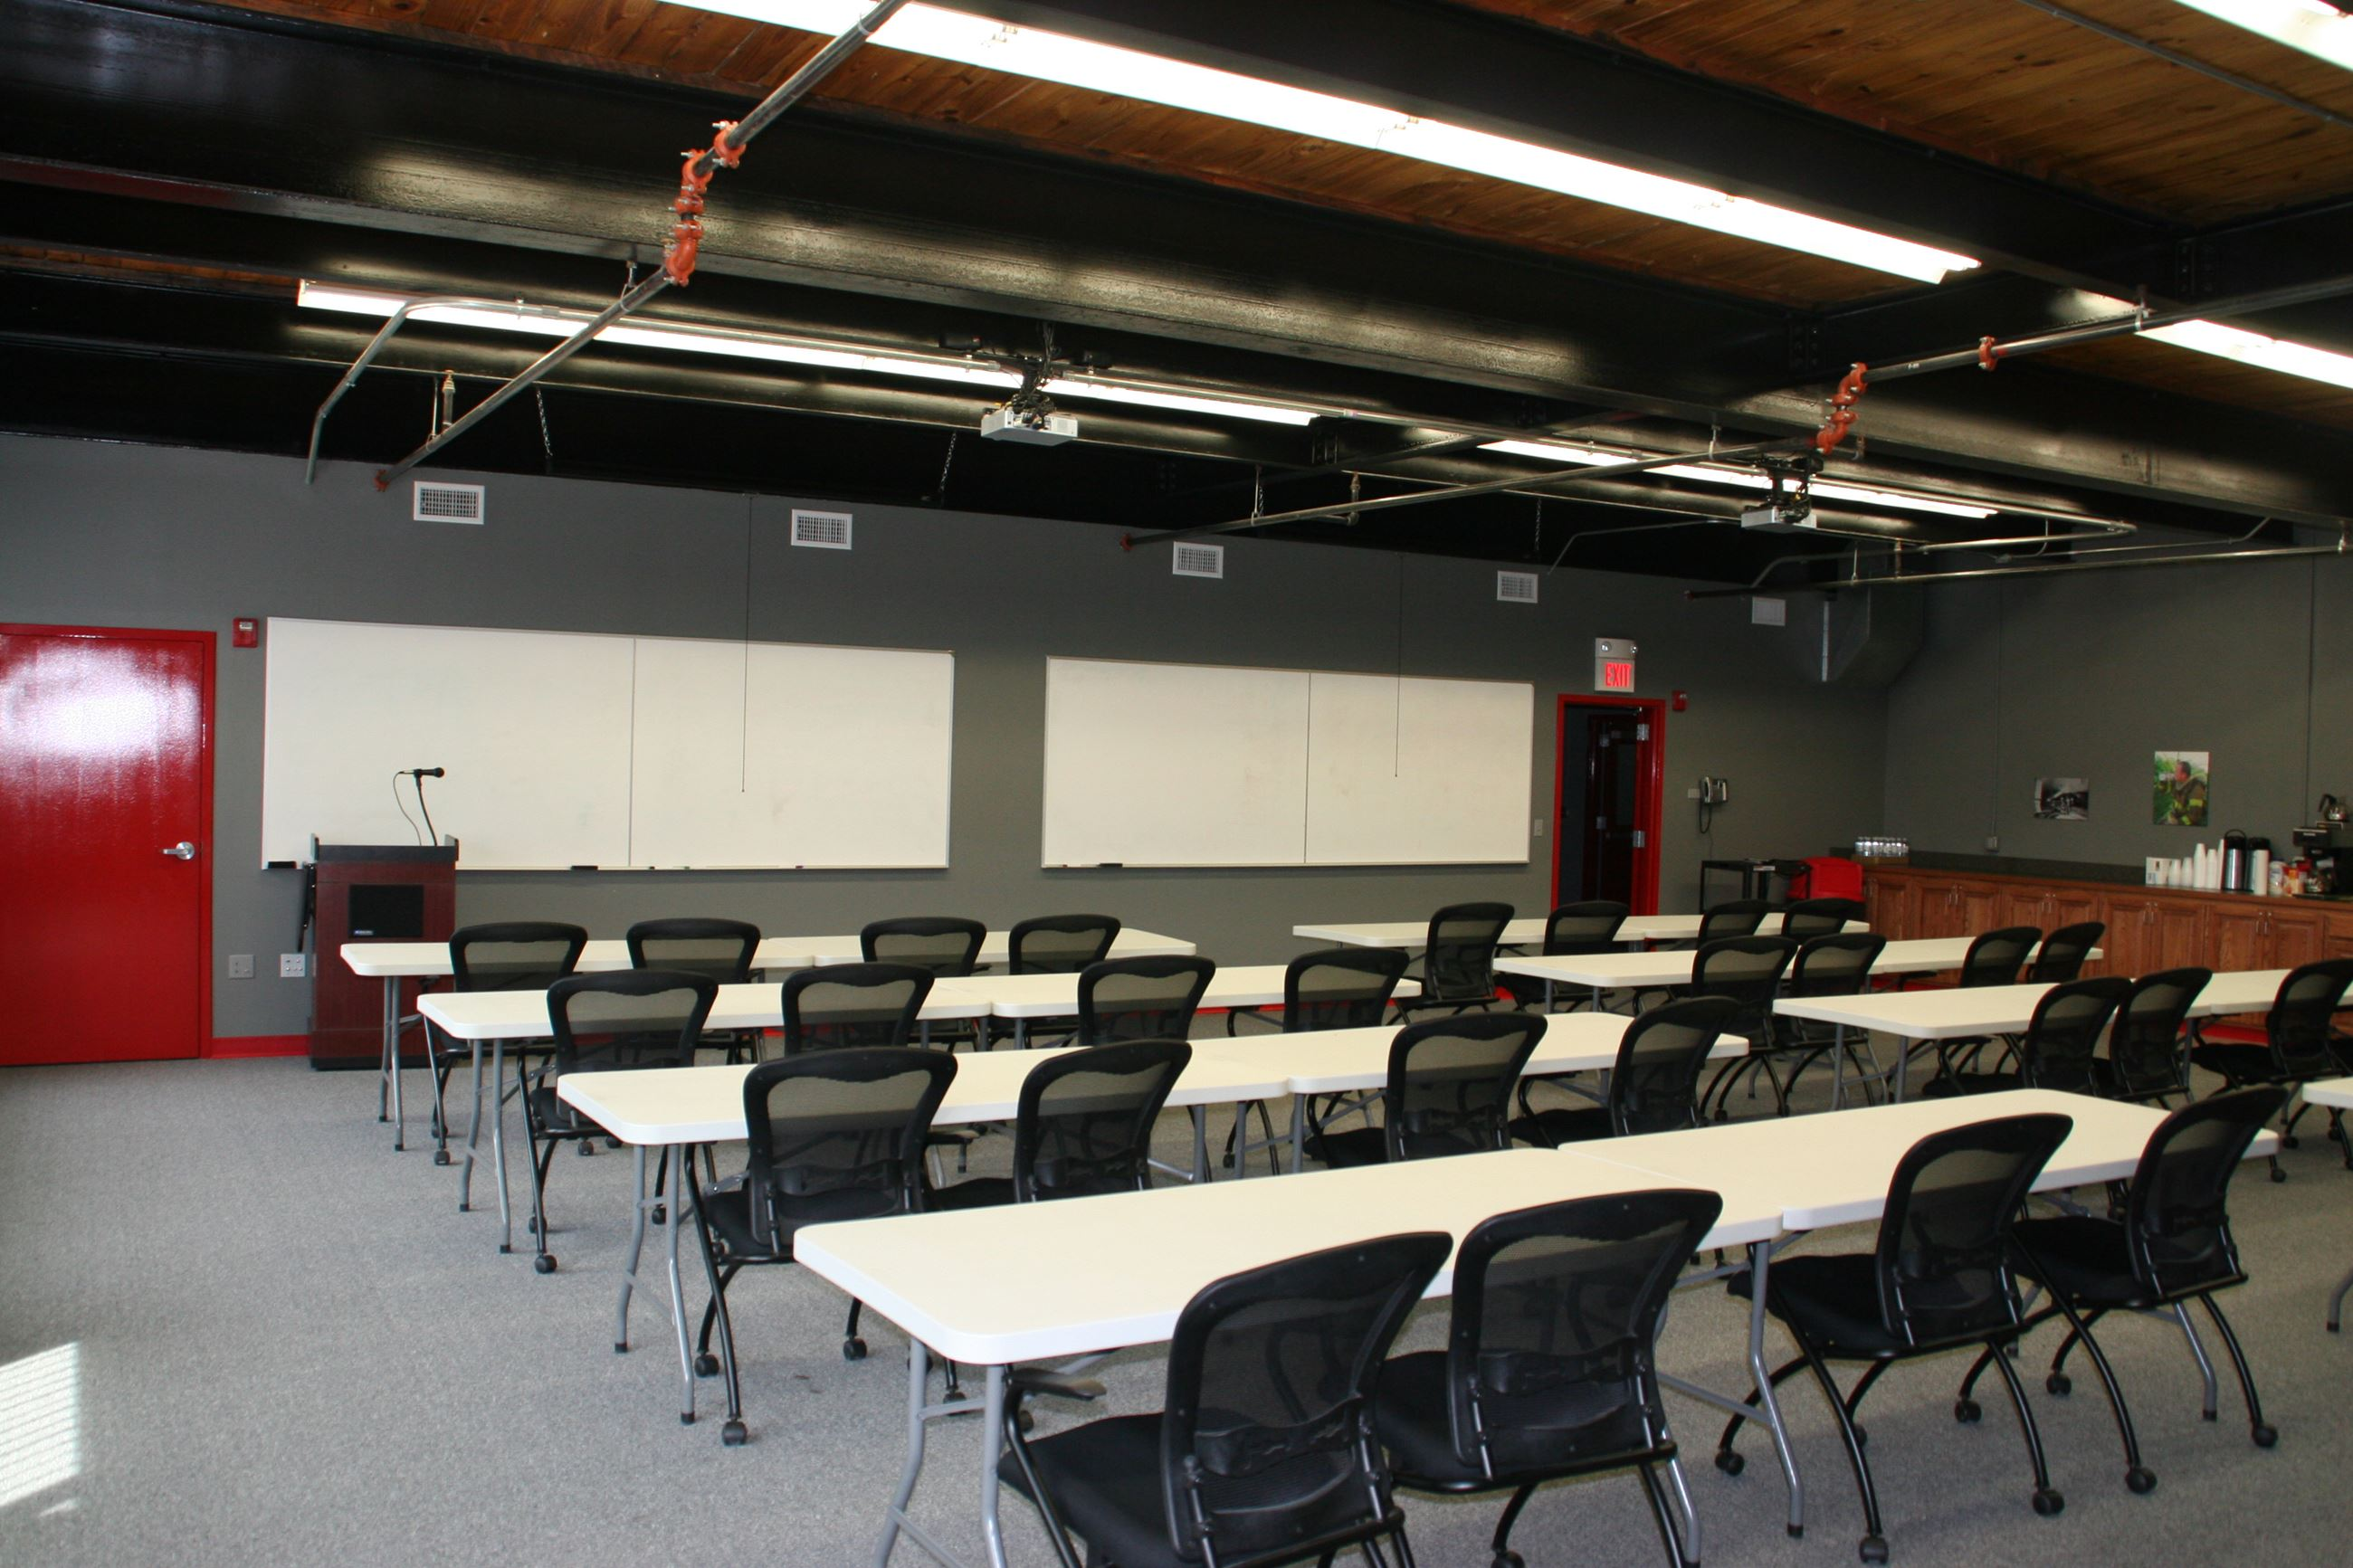 Paola Fire Department Large Training Room with tables and chairs set up.